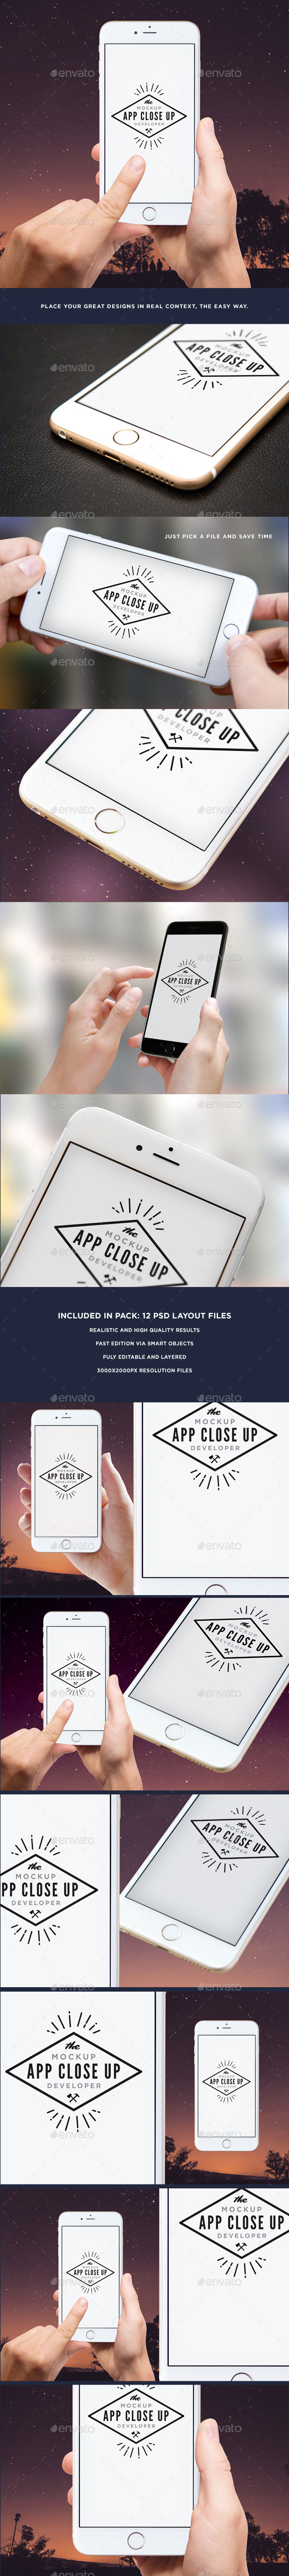 GraphicRiver App Phone 6 Close-Up Mock-Up 11024196